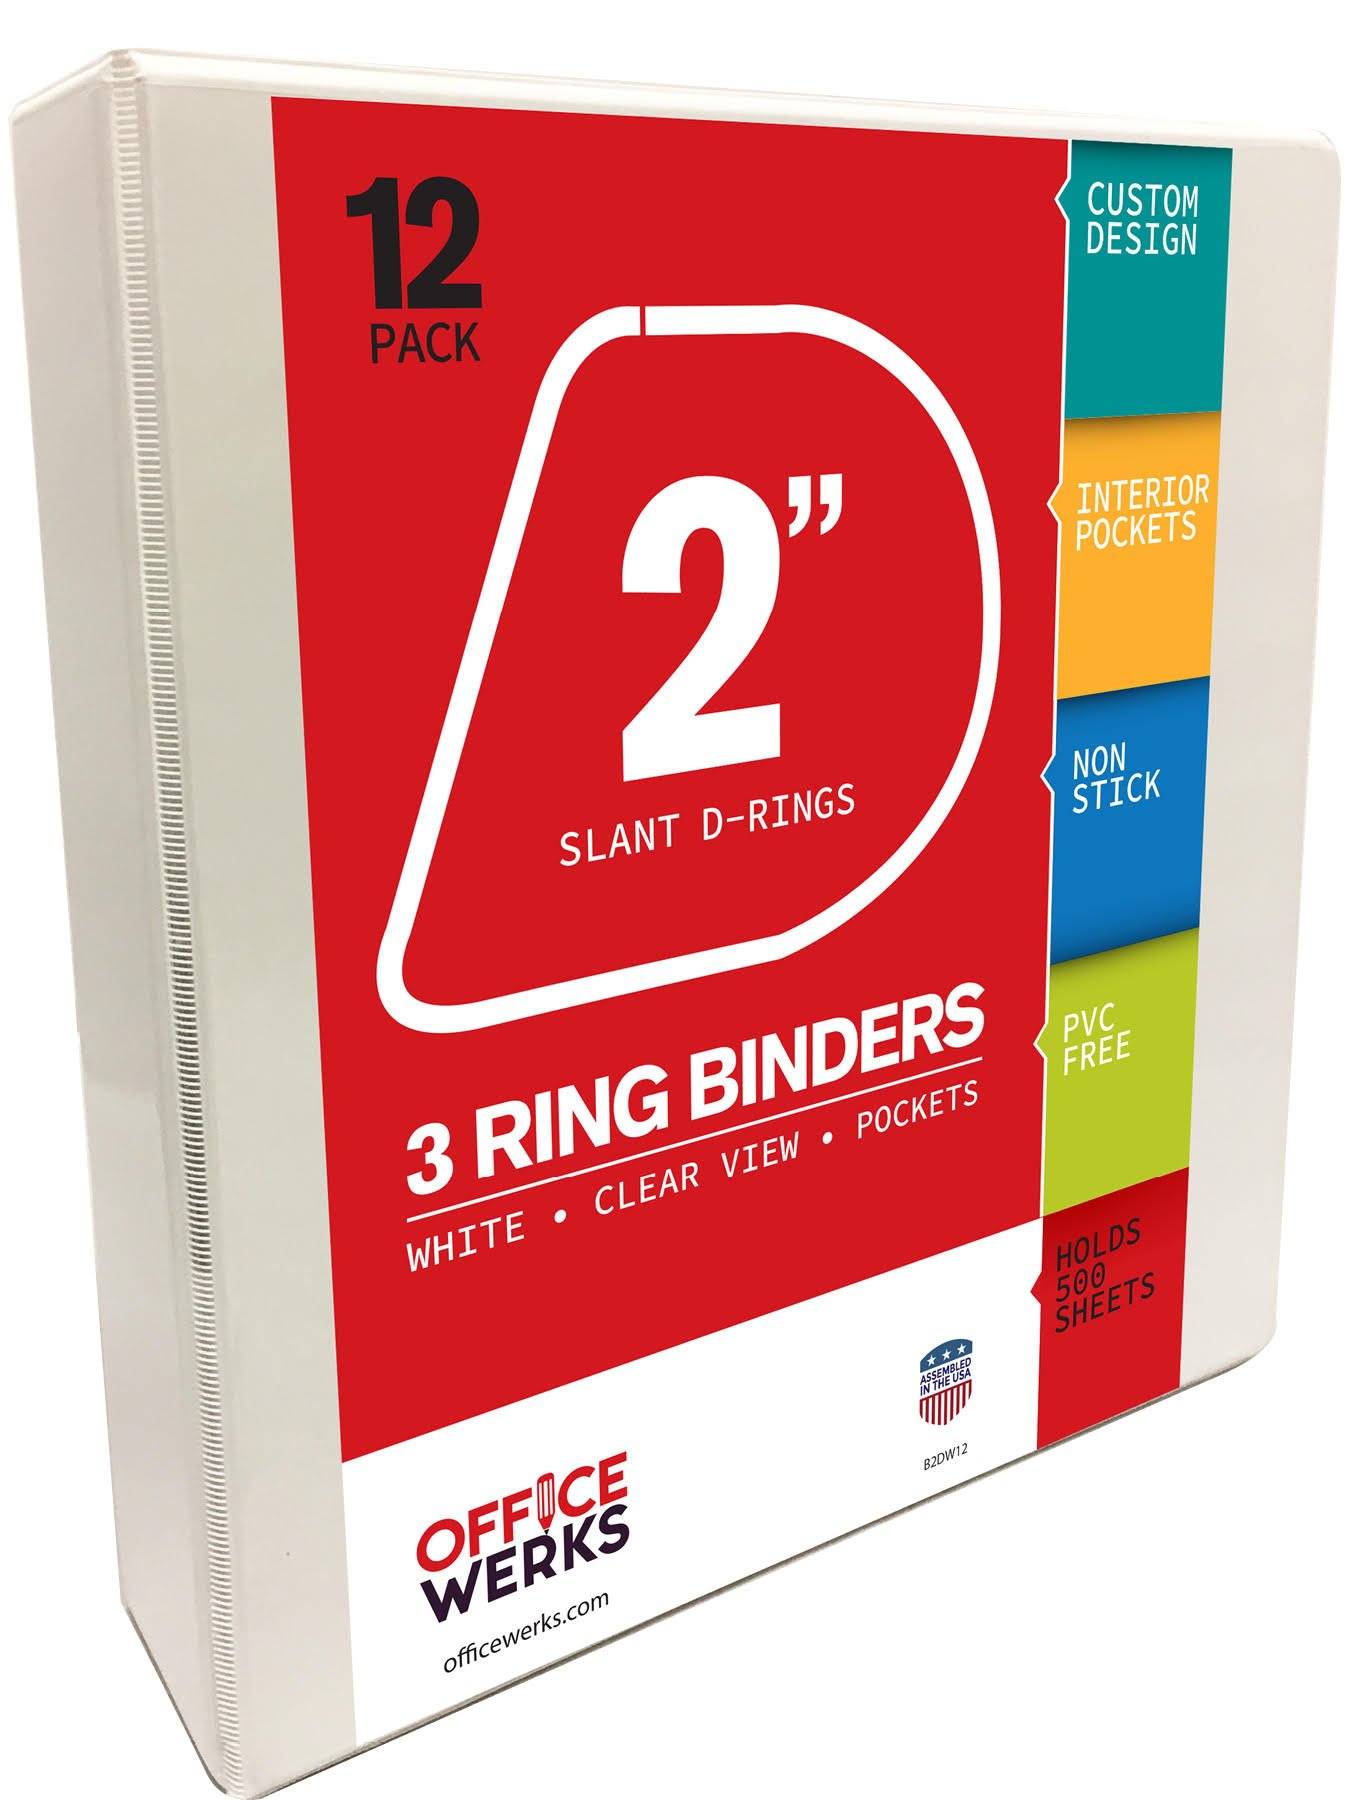 3 Ring Binders, 2 Inch Slant-D Rings, White, 12 Pack,  Clear View, Pockets